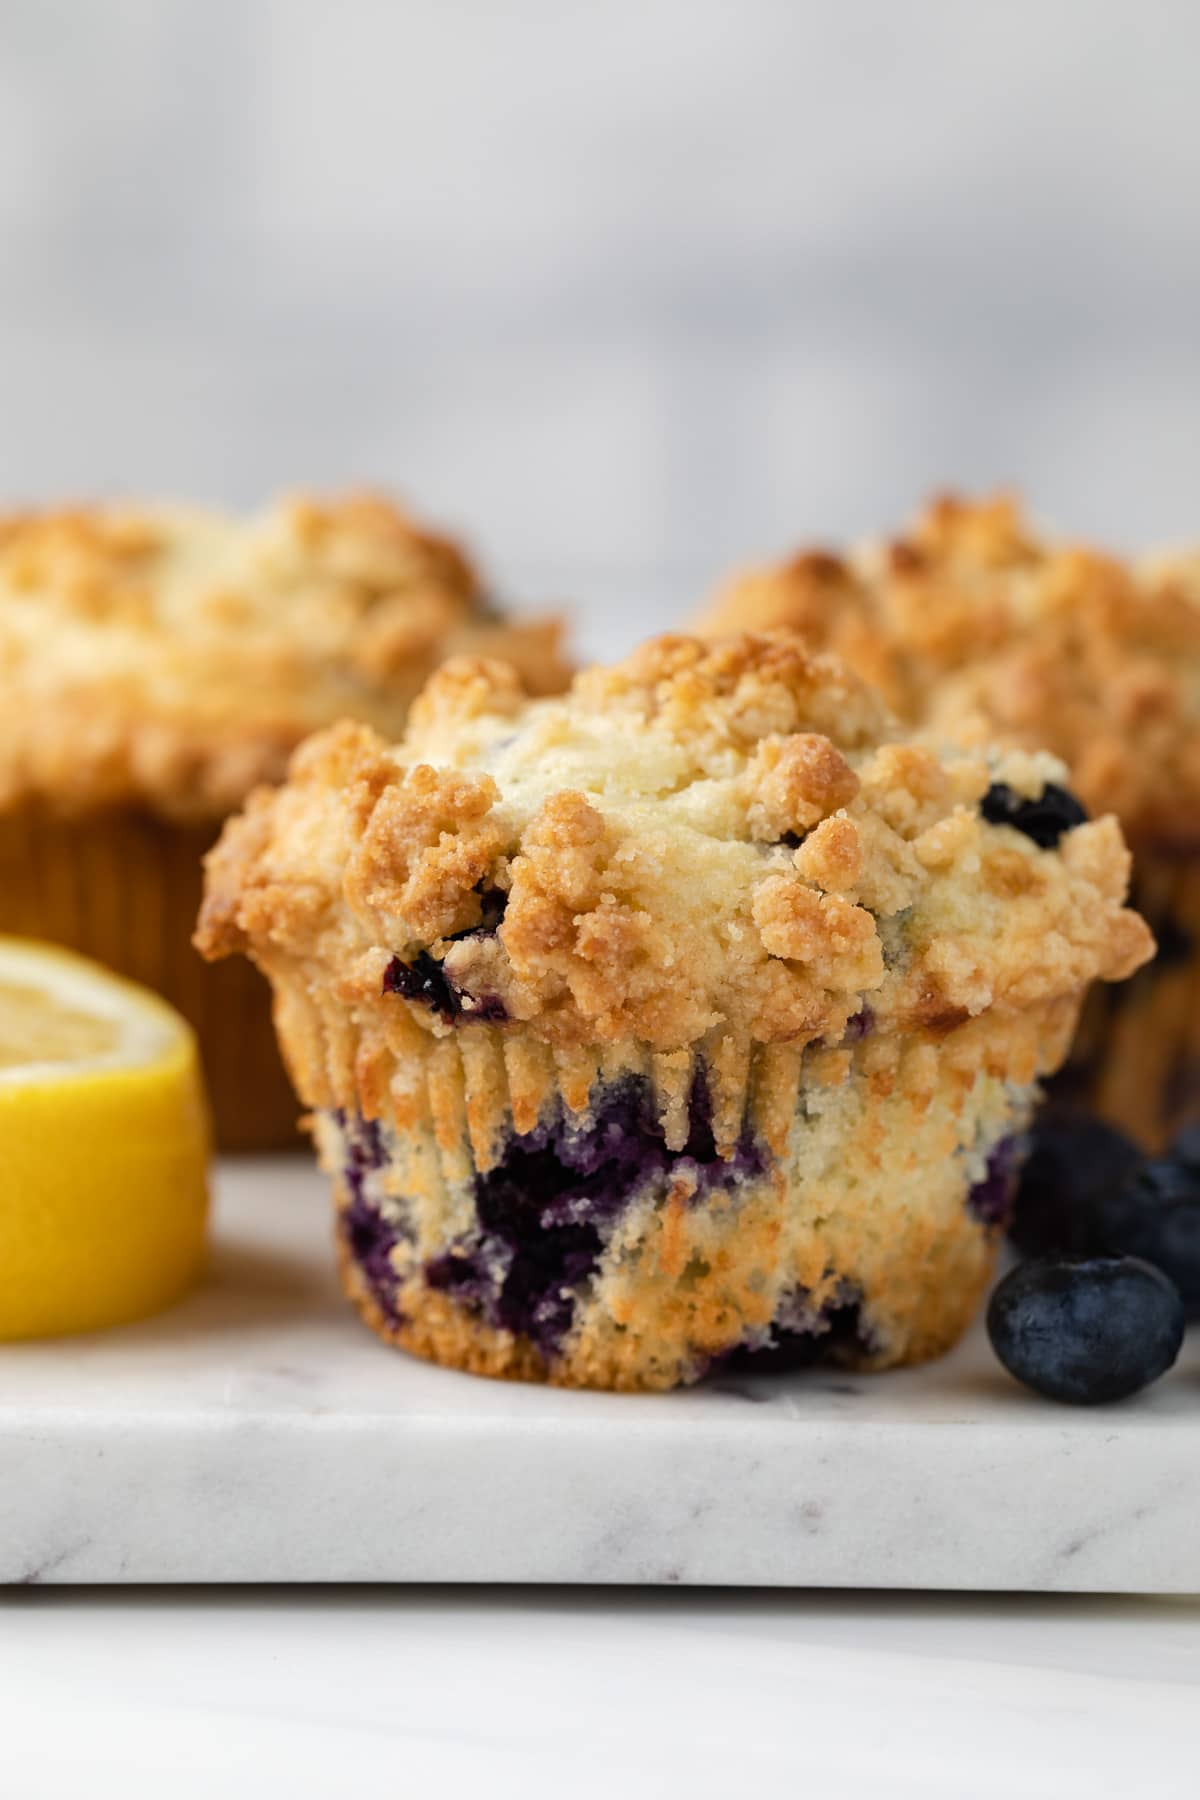 side view a muffin dotted with blueberries on a marble slab